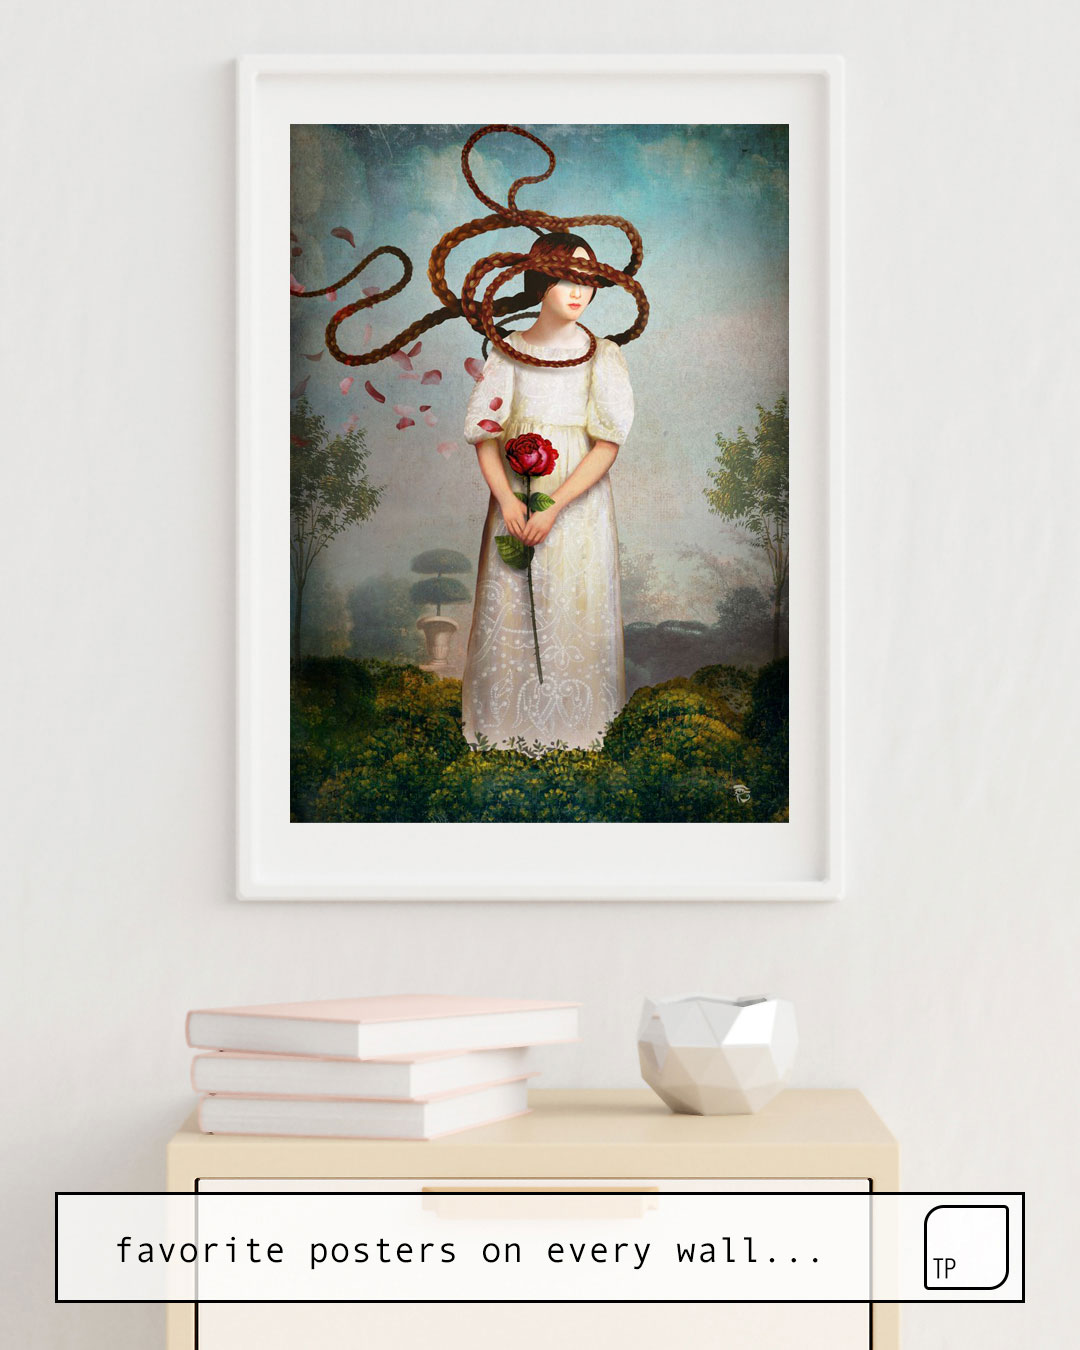 The photo shows an example of furnishing with the motif WAITING FOR YOU by Christian Schloe as mural